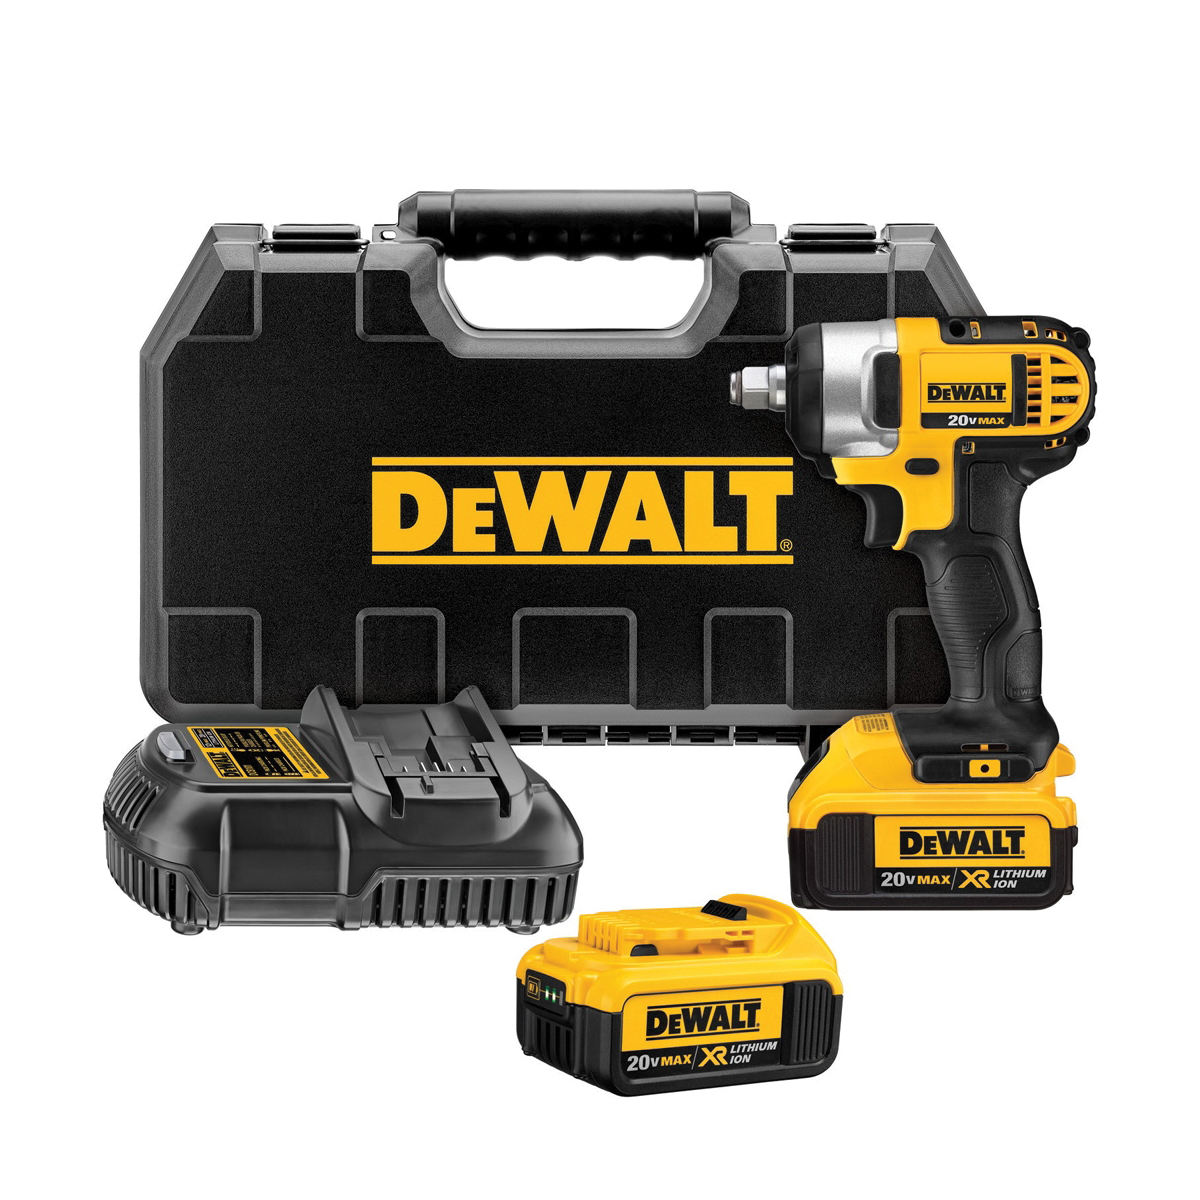 DeWALT® 20V MAX* MATRIX™ DCF880HM2 Compact Lightweight Cordless Impact Wrench Kit With Hog Ring Anvil, 1/2 in Square Drive, 1800 in-lb Torque, 20 VDC, 5-3/4 in OAL